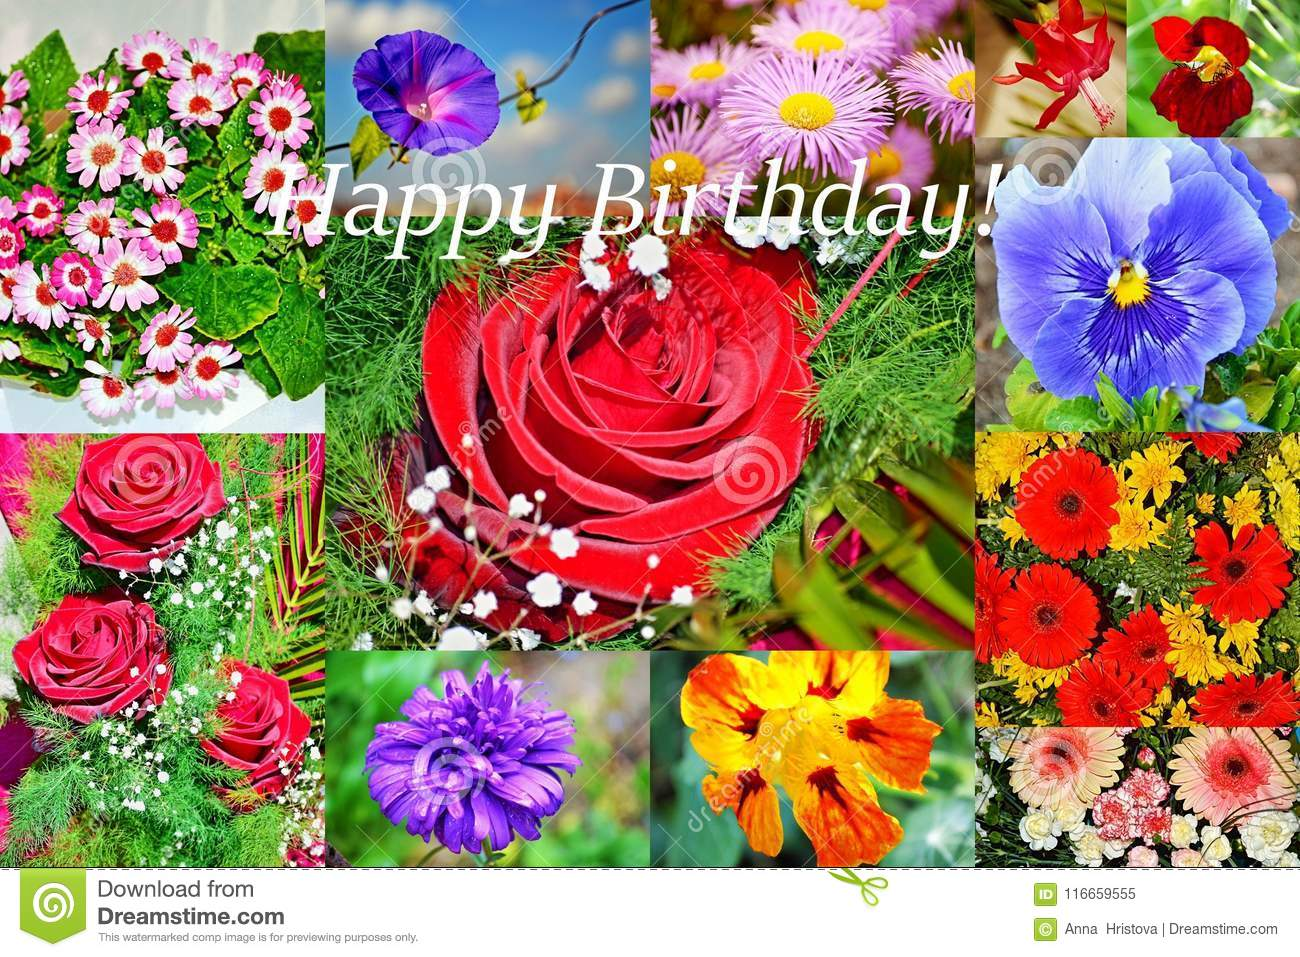 Happy birthday flowers collage postcard stock image image of happy birthday flowers collage postcard izmirmasajfo